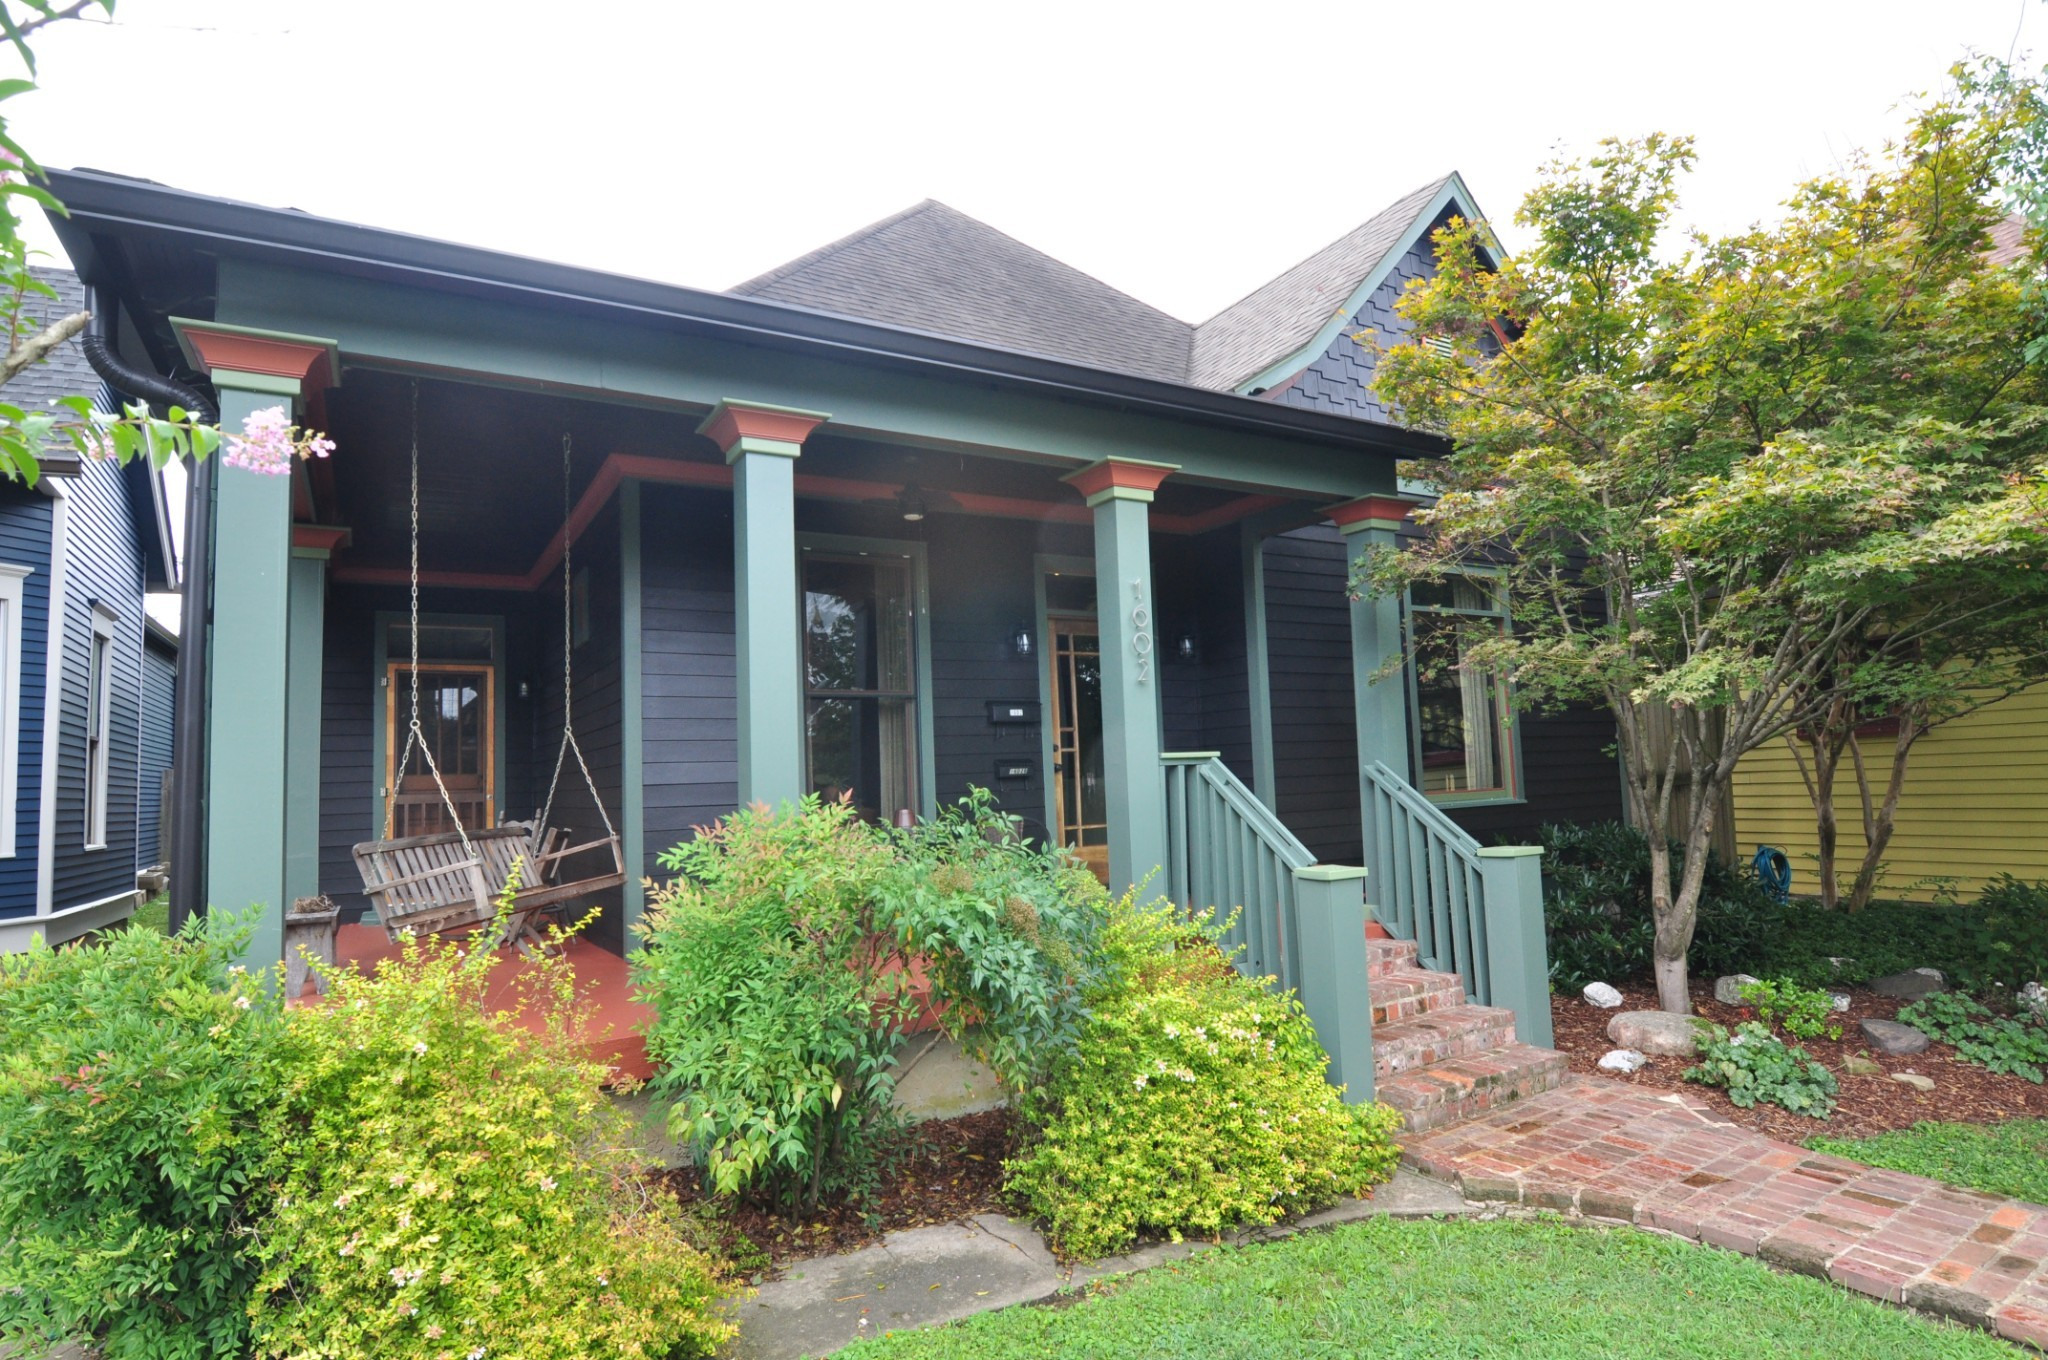 1602 Woodland St Property Photo - Nashville, TN real estate listing